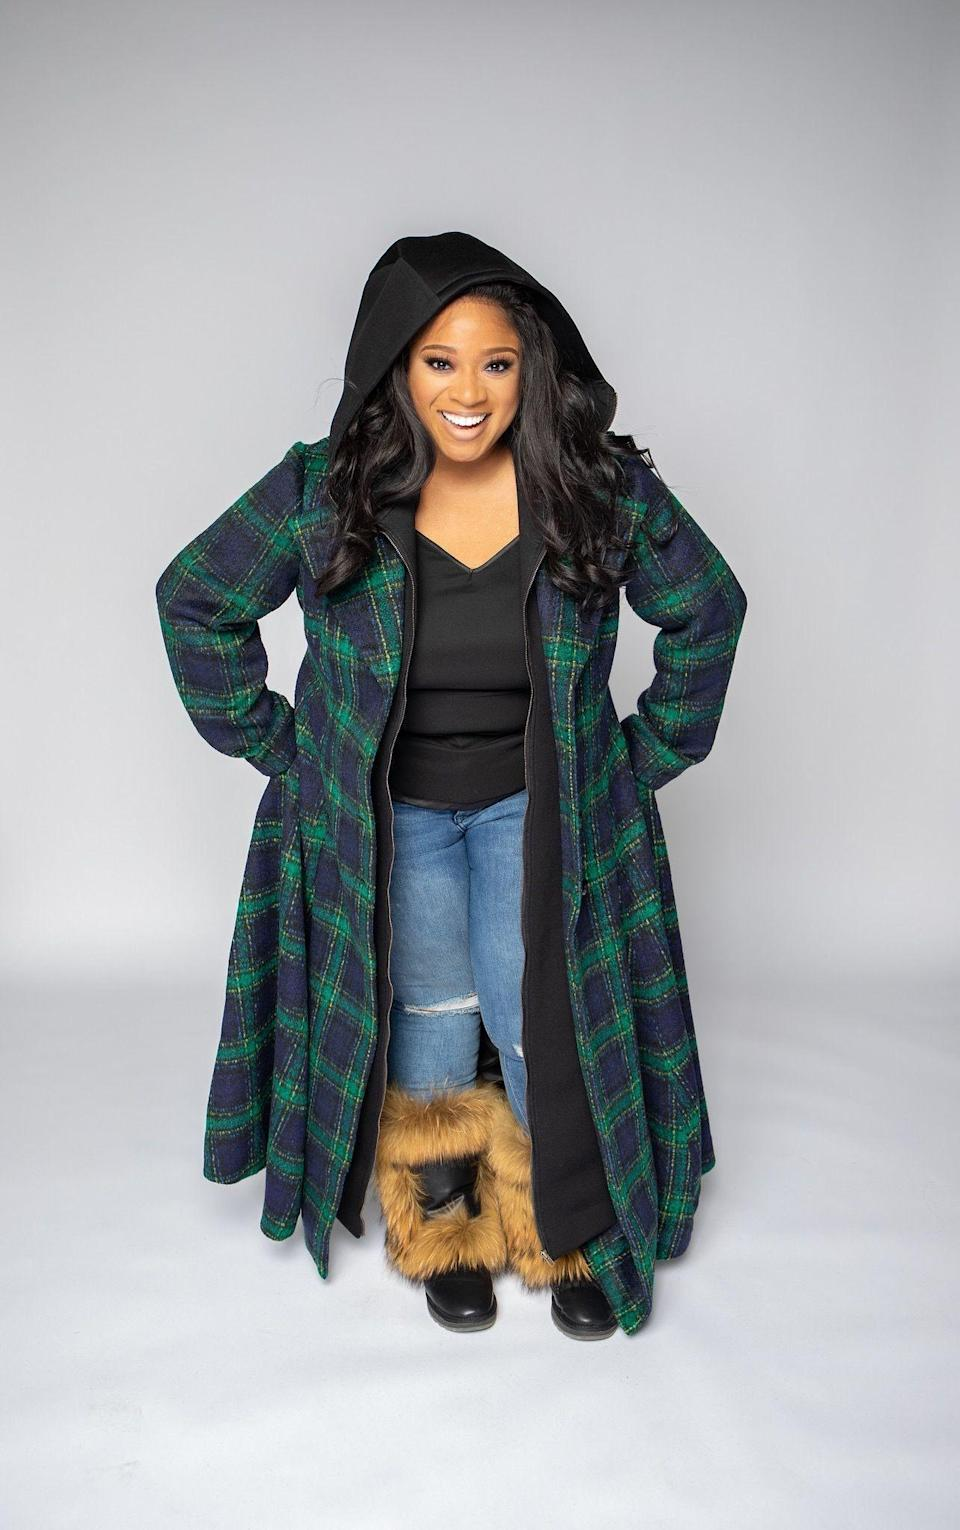 """<p><strong>Eleven60</strong></p><p>myeleven60.com</p><p><strong>$395.00</strong></p><p><a href=""""https://myeleven60.com/product/j-trench-coat-plaid/"""" rel=""""nofollow noopener"""" target=""""_blank"""" data-ylk=""""slk:SHOP NOW"""" class=""""link rapid-noclick-resp"""">SHOP NOW</a></p><p>This plaid coat is the ultimate overachiever: It's colorful yet super wearable (thanks to shades of deep blue and green); it's cool yet practical (thanks to its hood and double layers); and it works equally great for day and night (thanks to its floor length).</p>"""